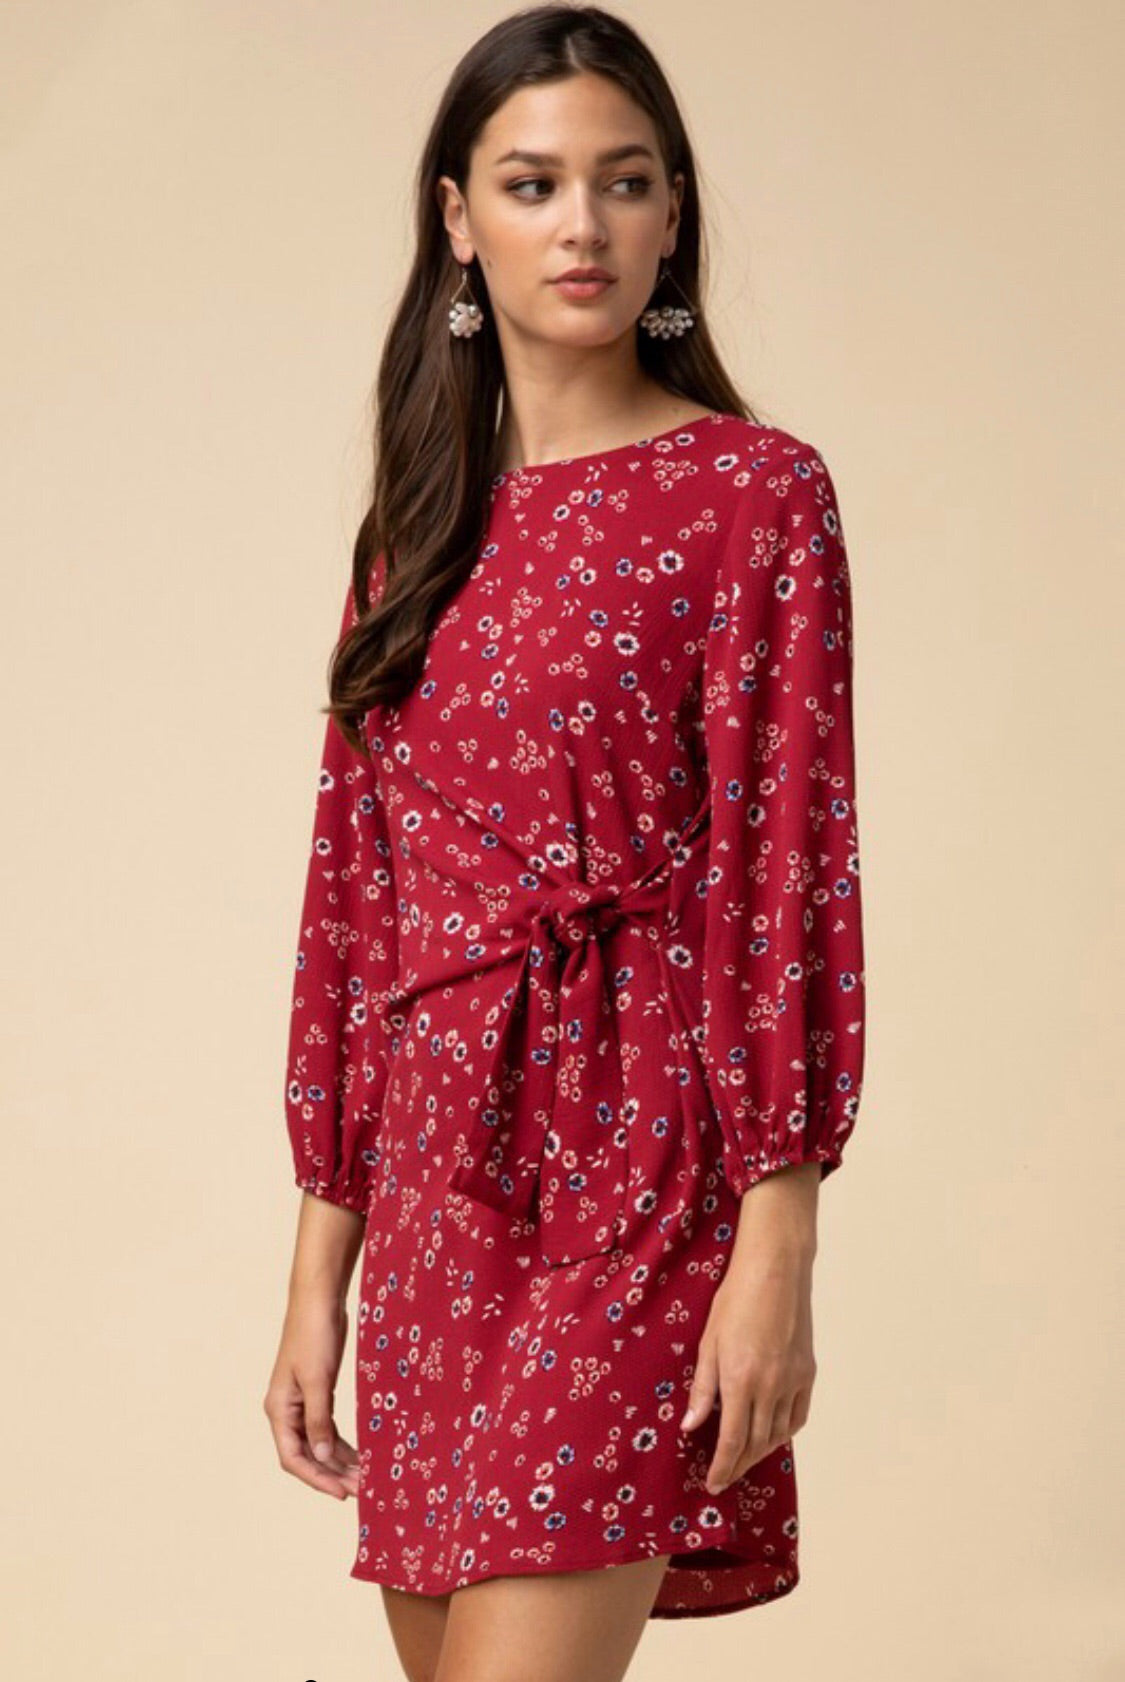 Wine Floral Print w/ Puff Sleeve Dress